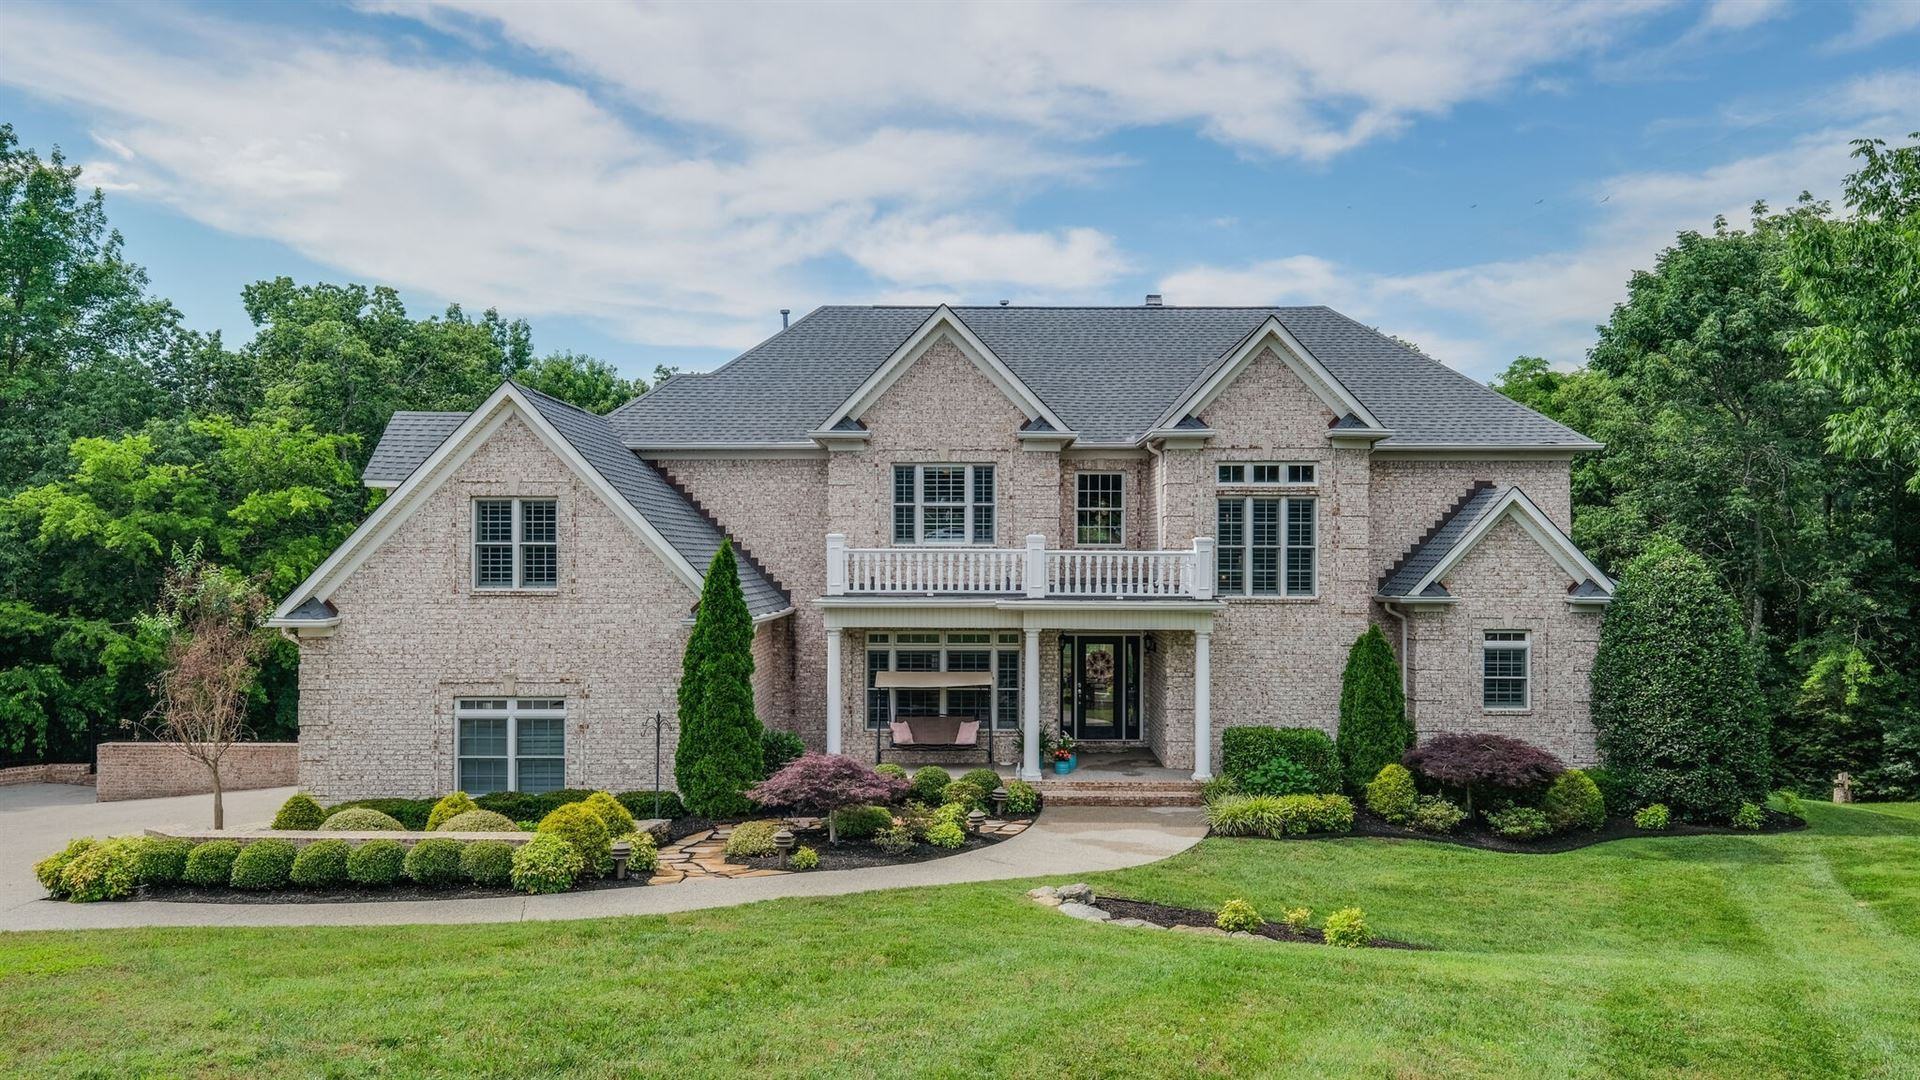 Photo of 8106 Shady Pl, Brentwood, TN 37027 (MLS # 2166968)